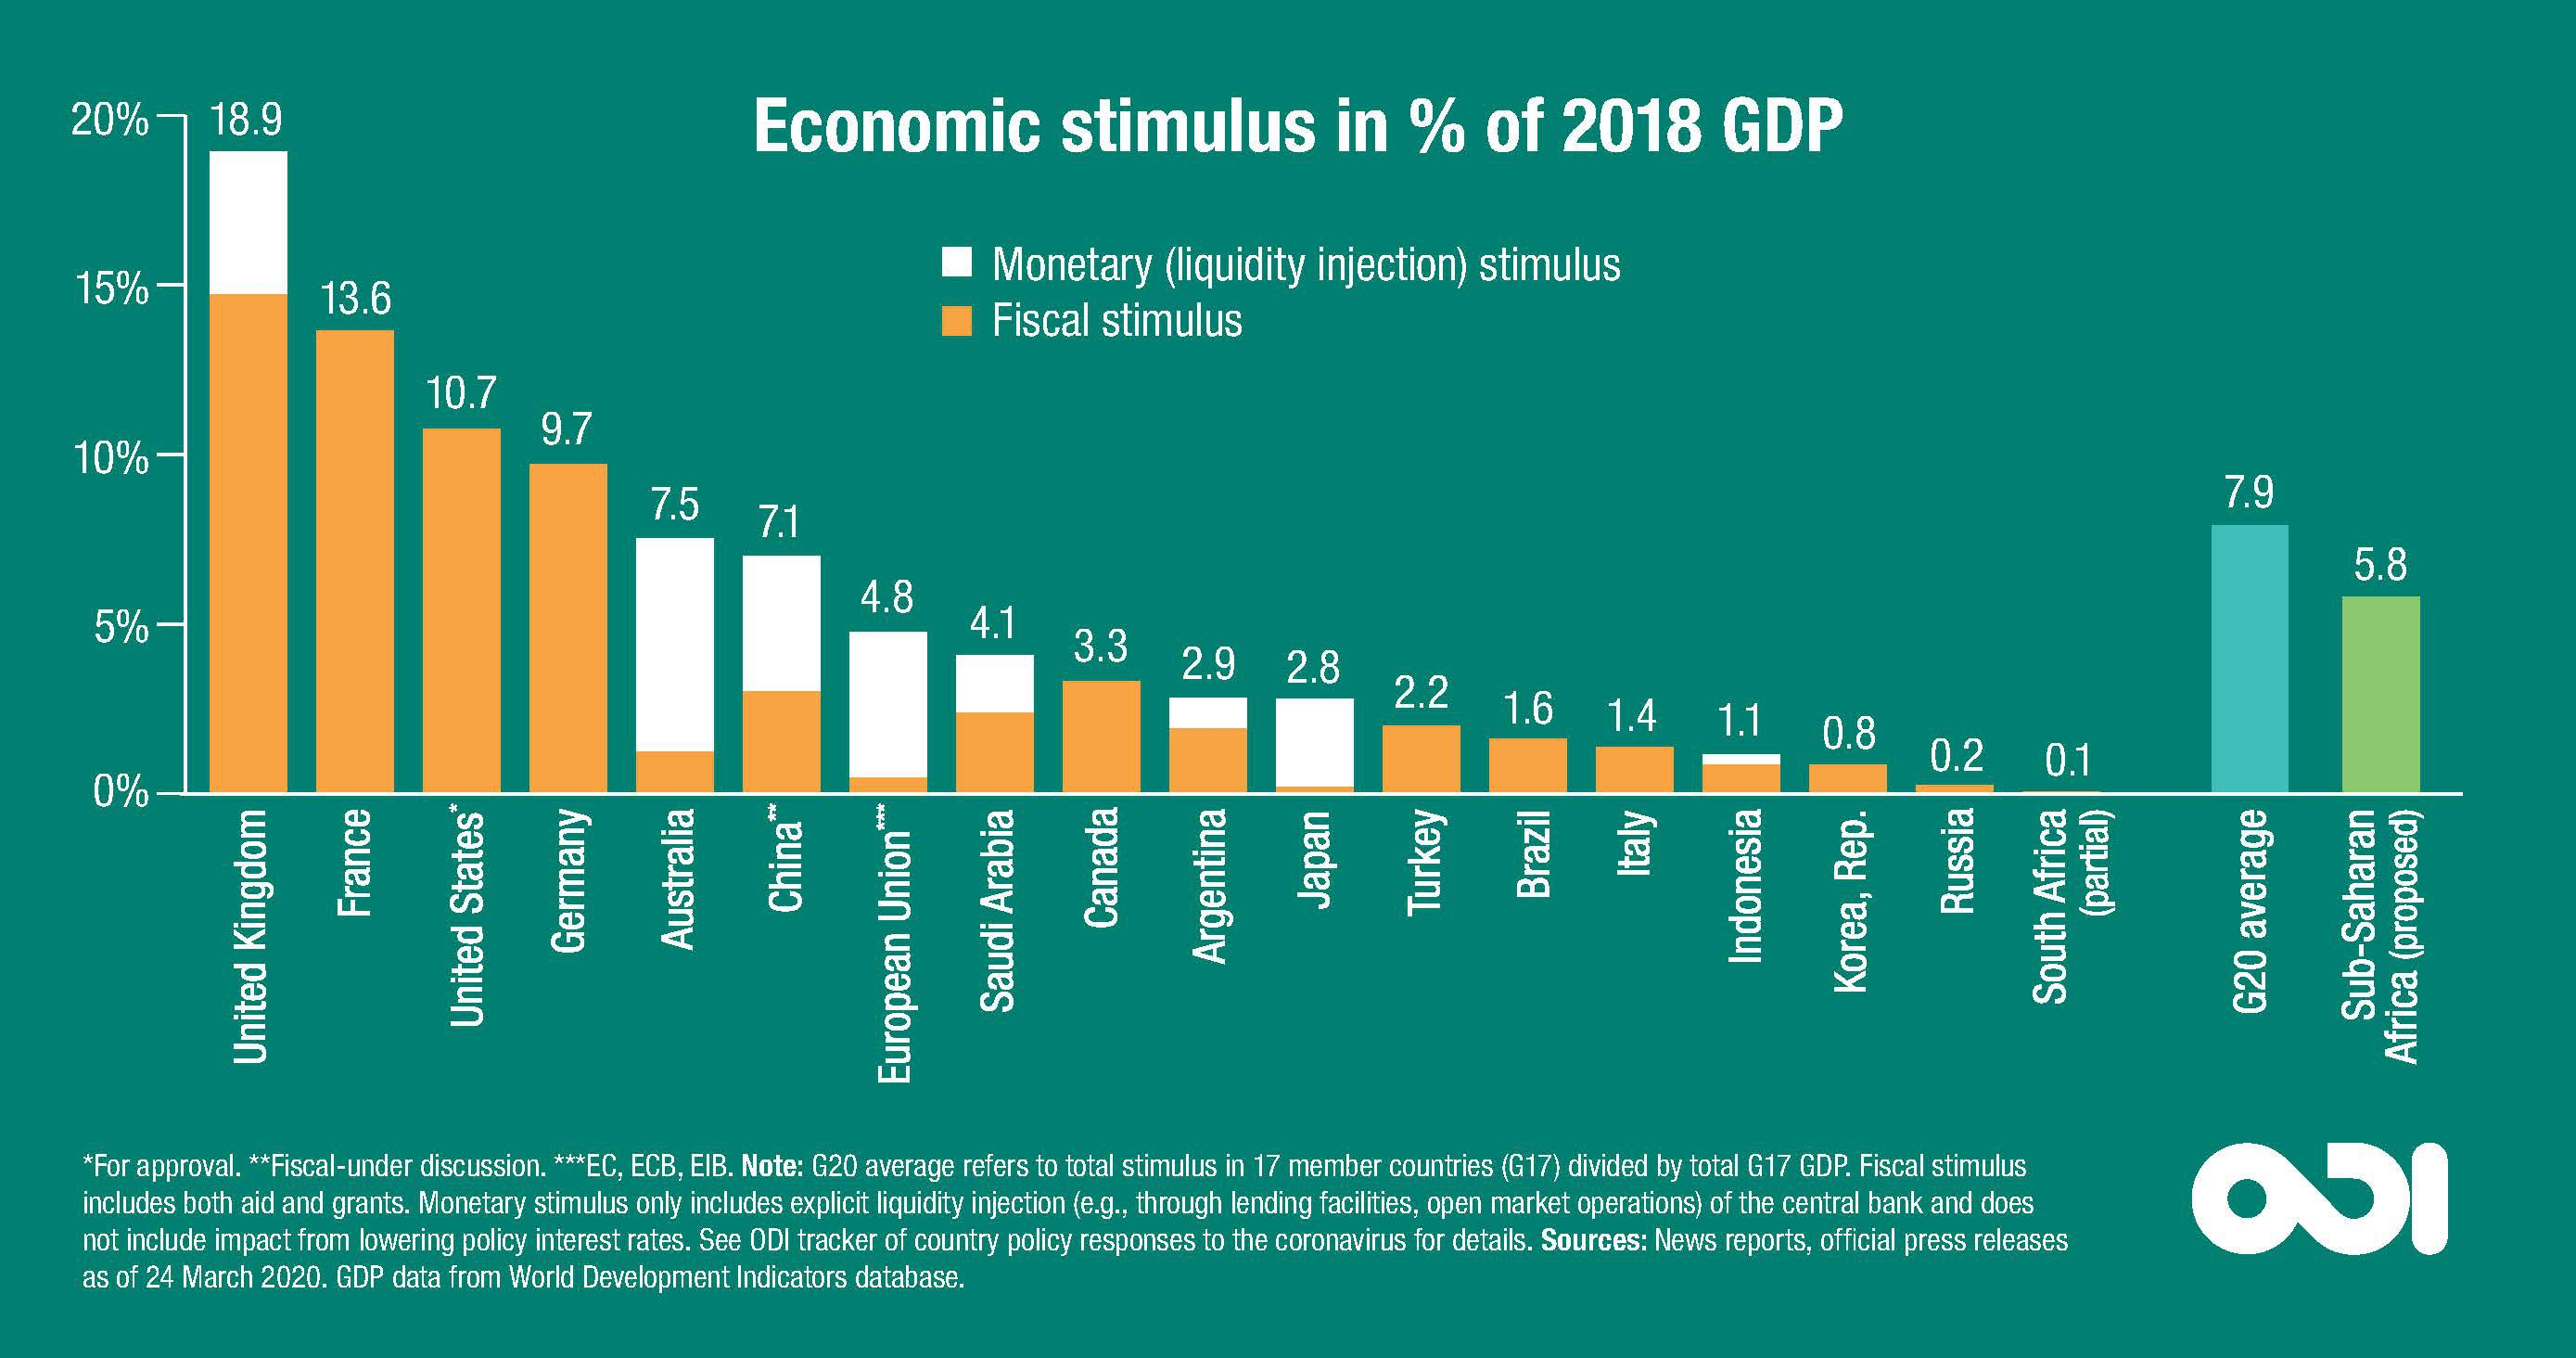 Economic stimulus as a % of 2018 GDP